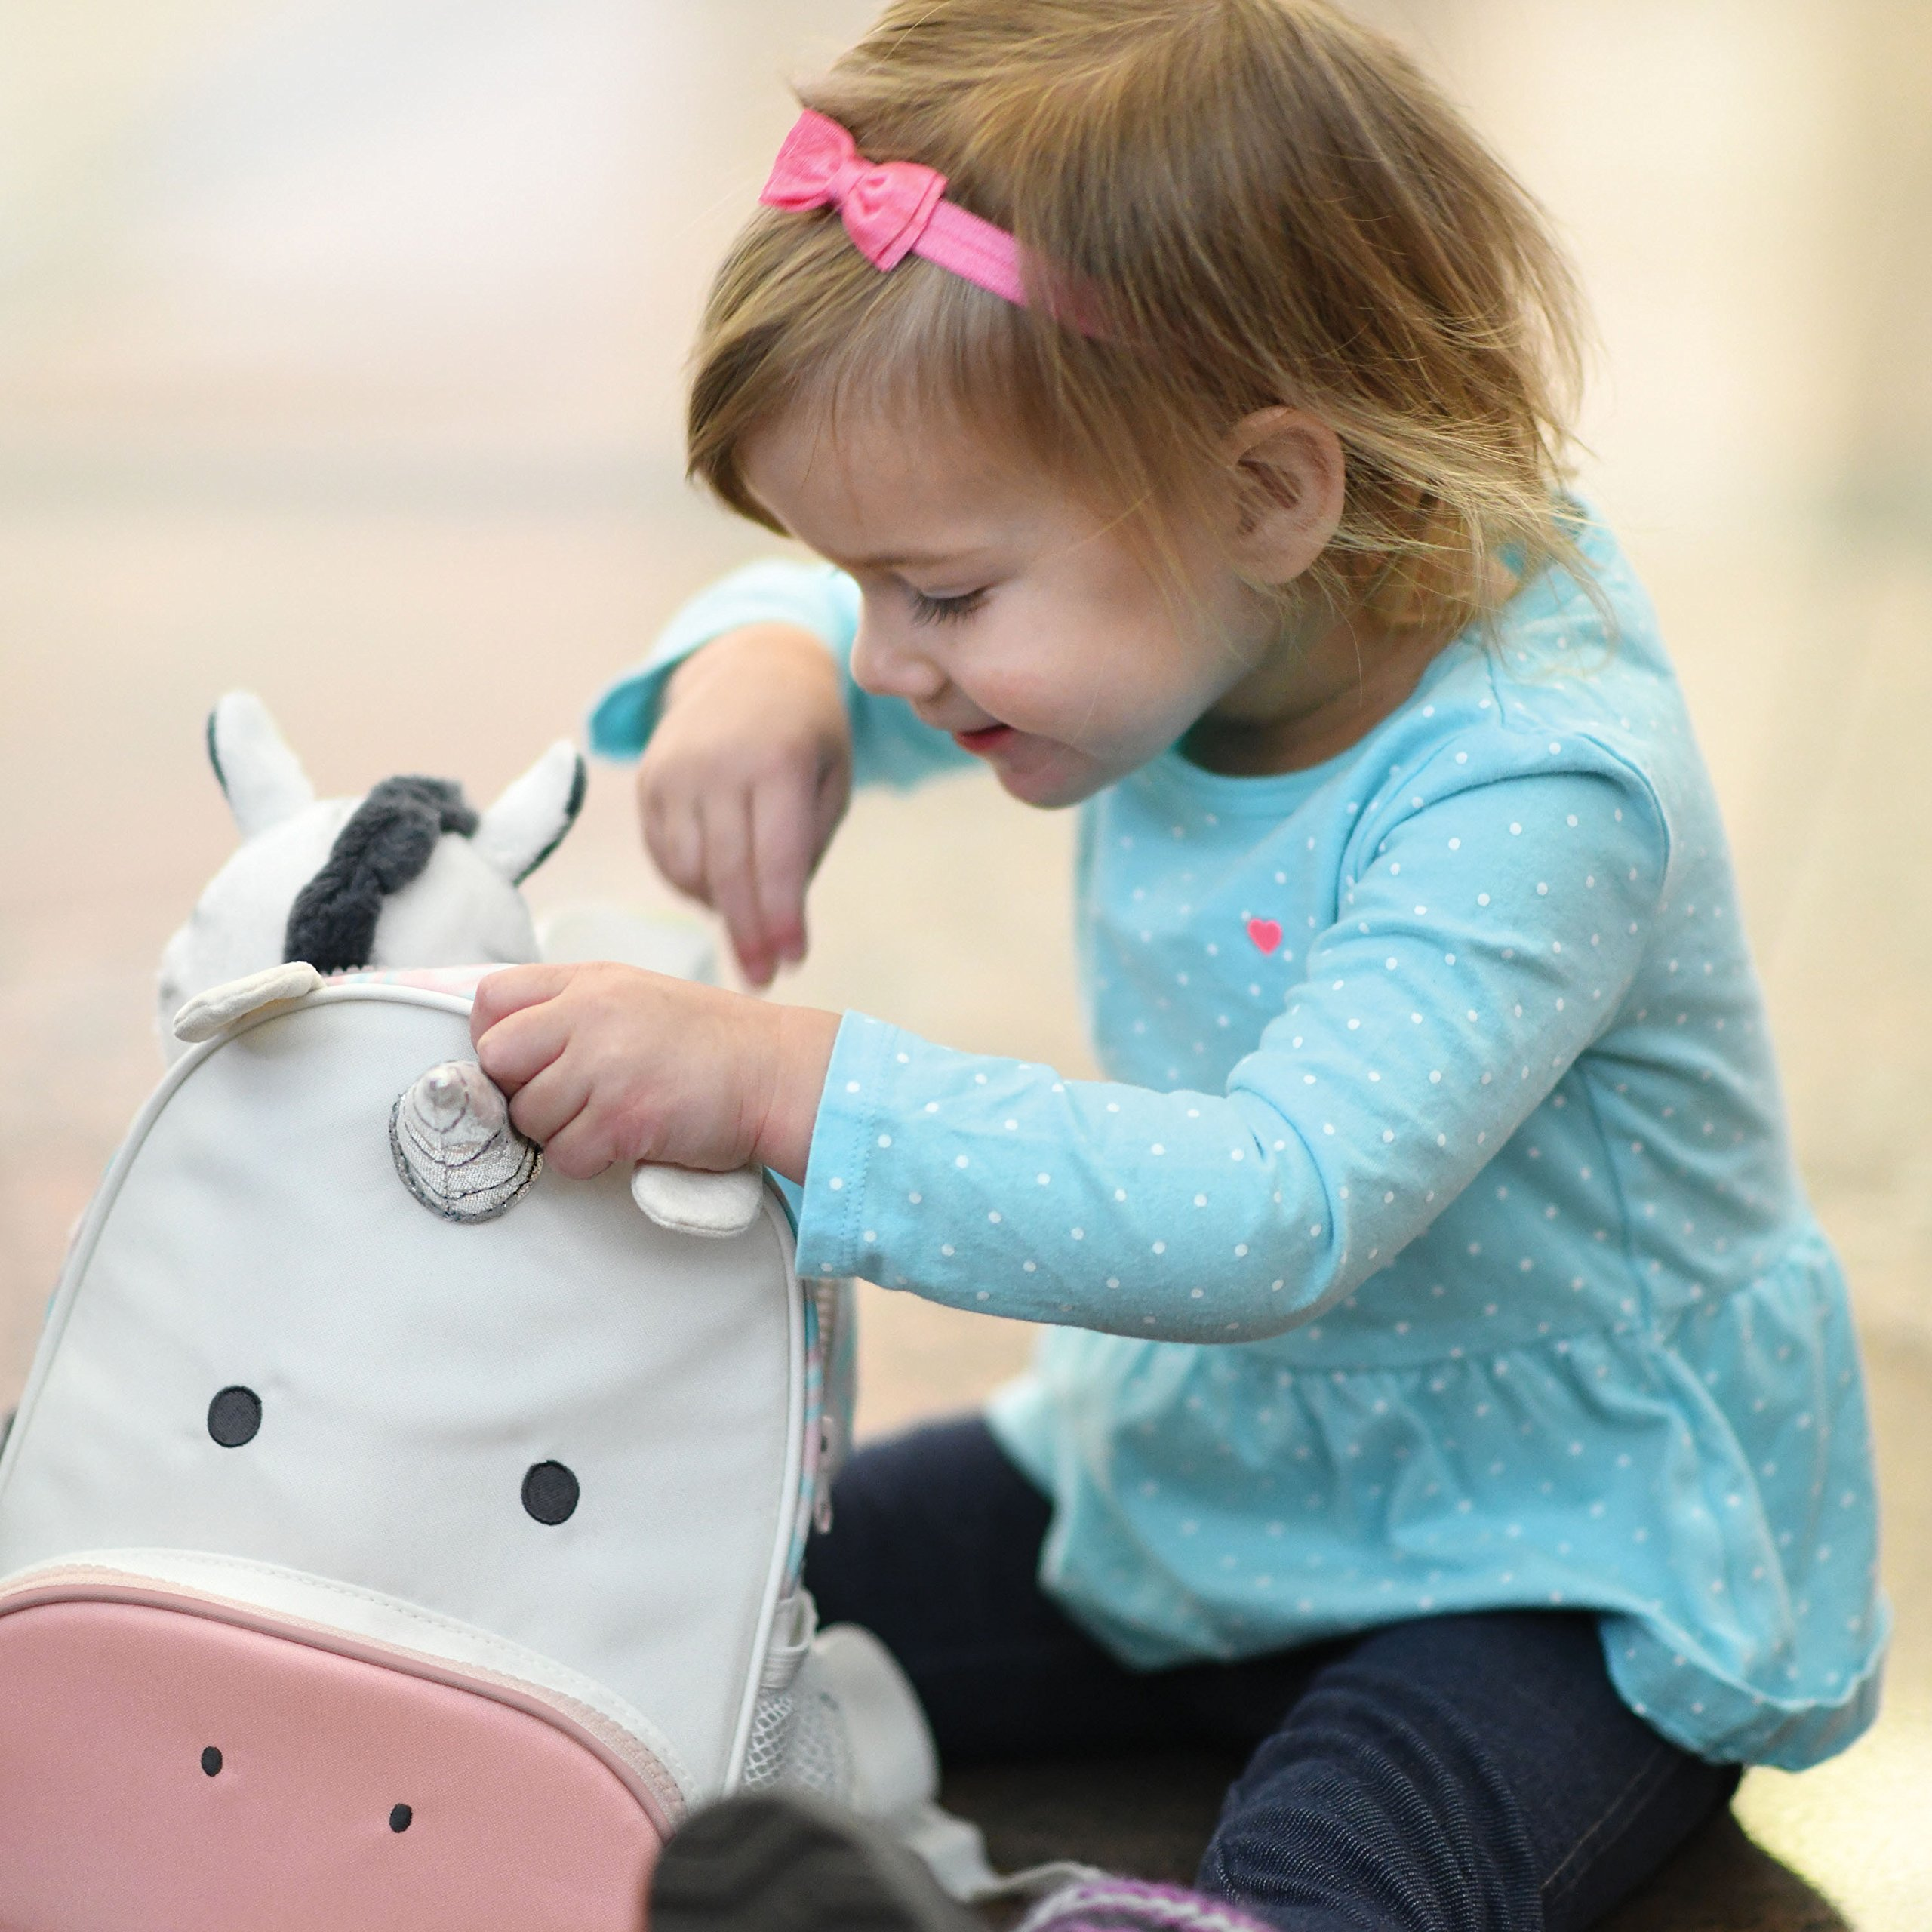 Travel Bug Toddler Safety Unicorn Backpack Harness with Removable Tether, Pink/White by Travel Bug (Image #6)